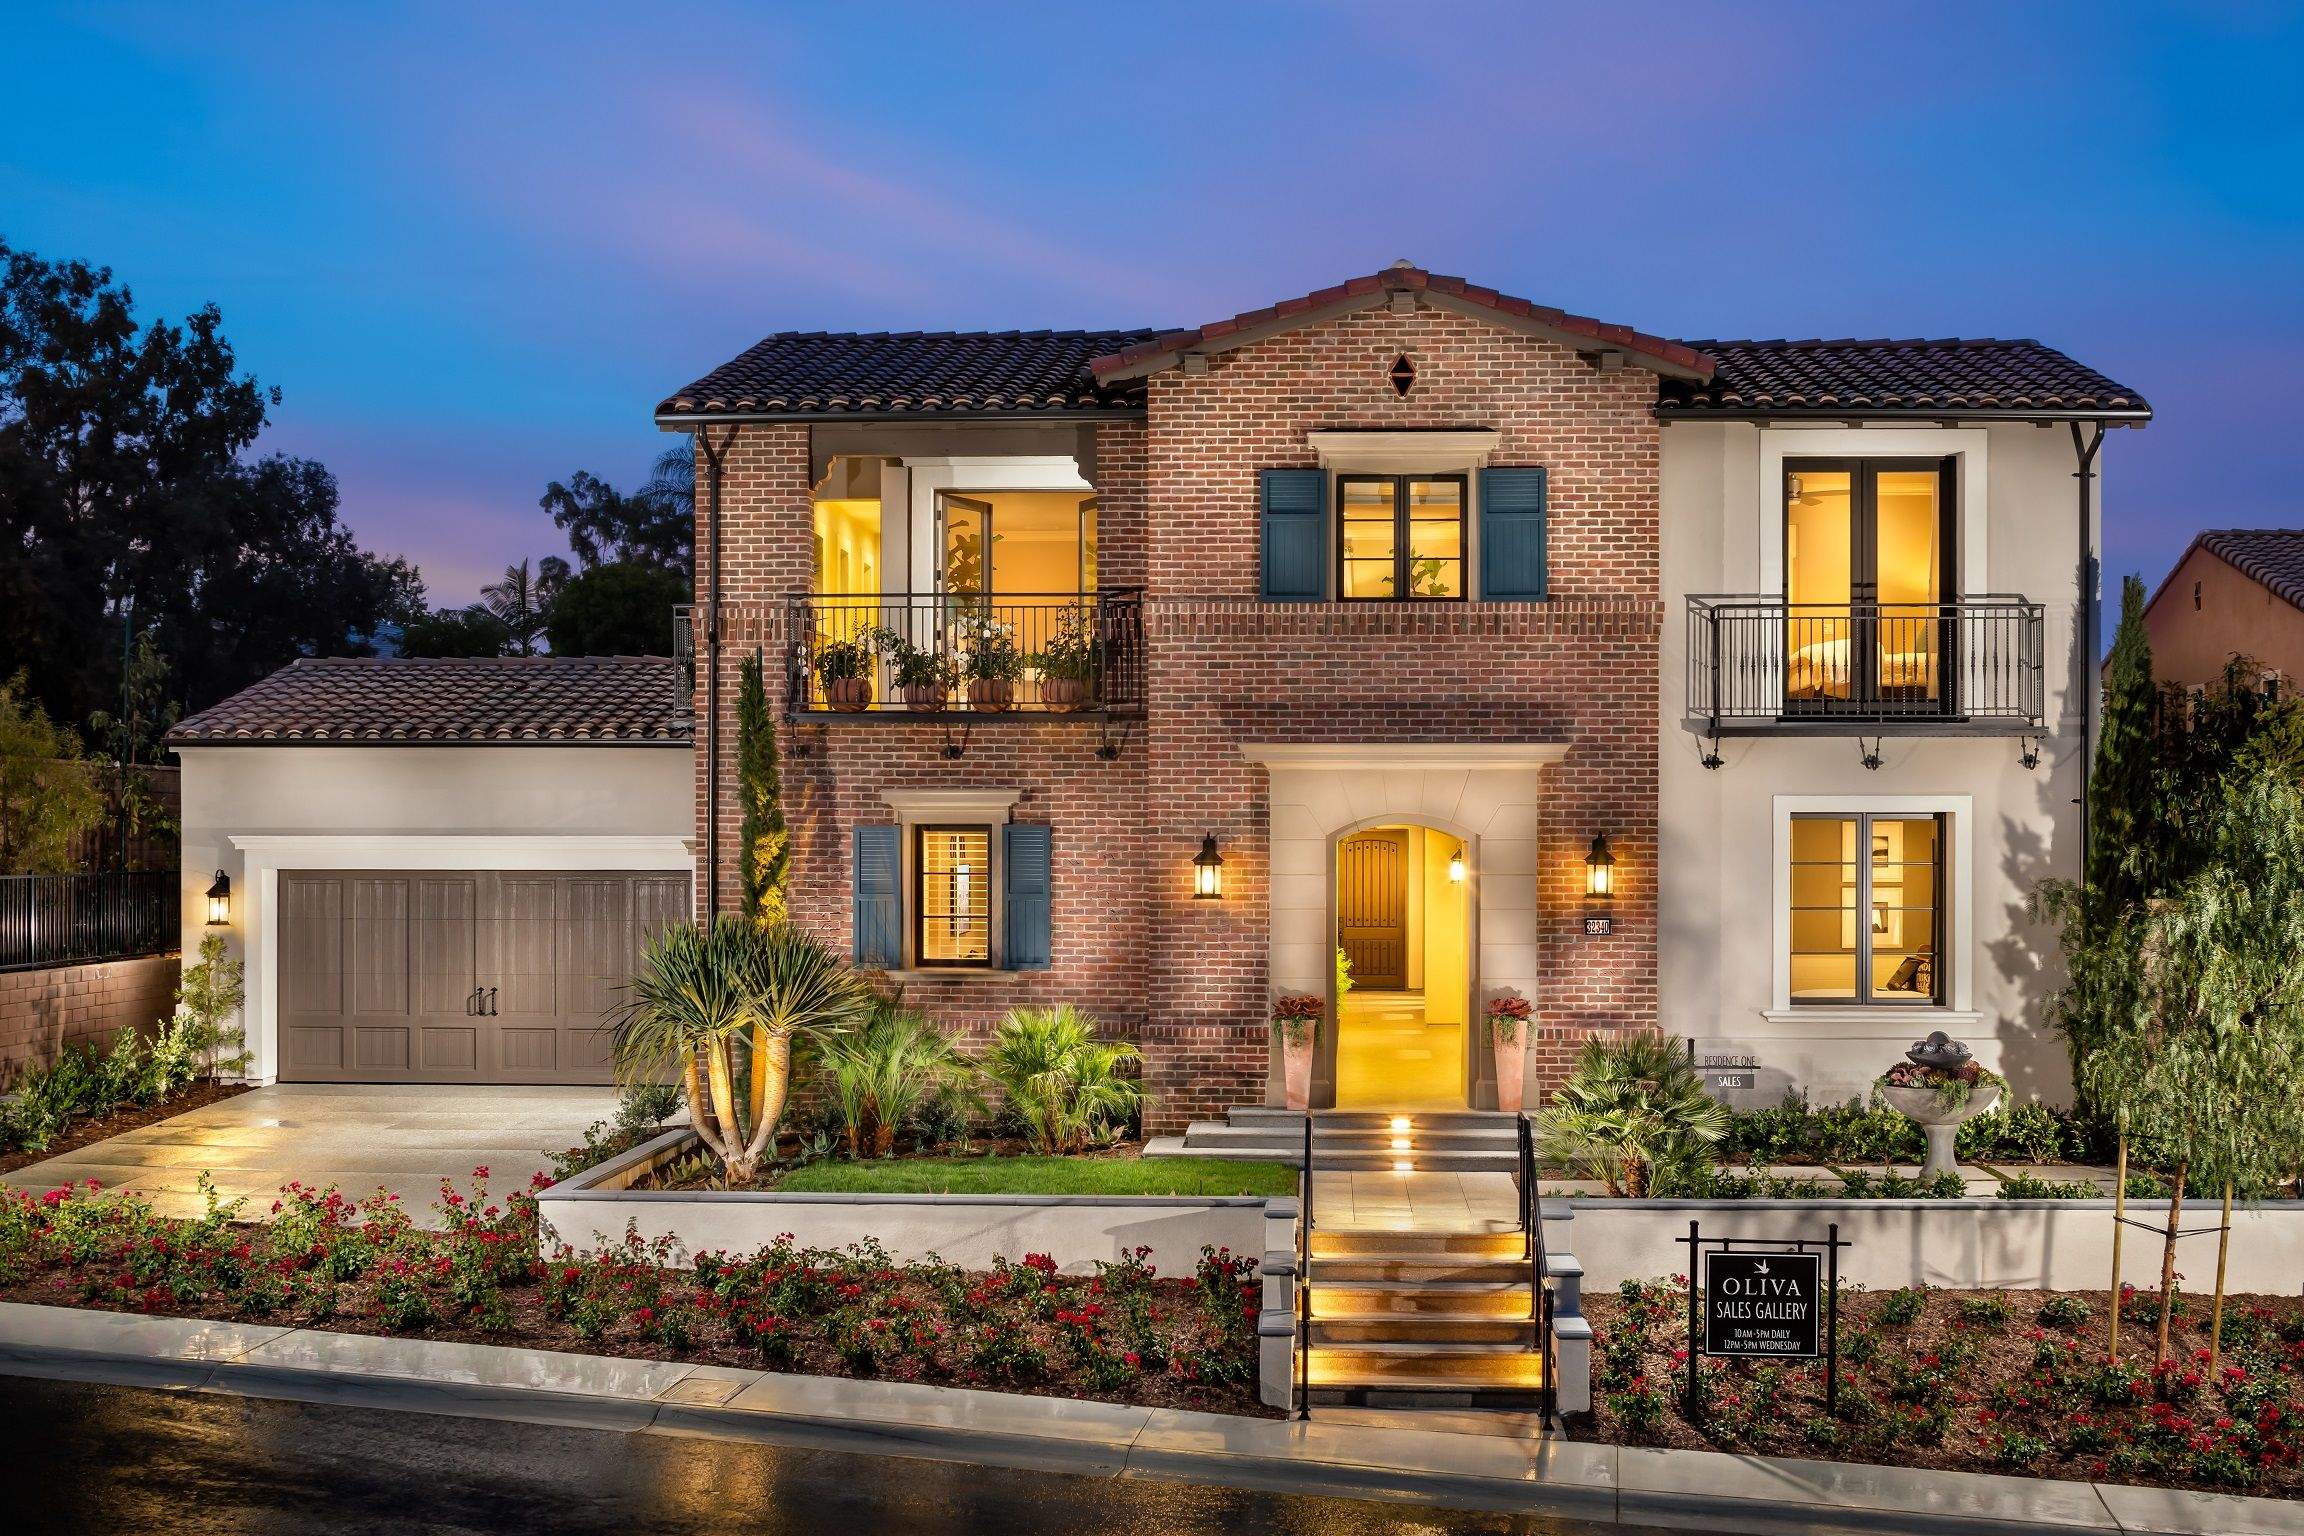 New Home Designs Latest October 2011: New Homes In San Juan Capistrano, CA